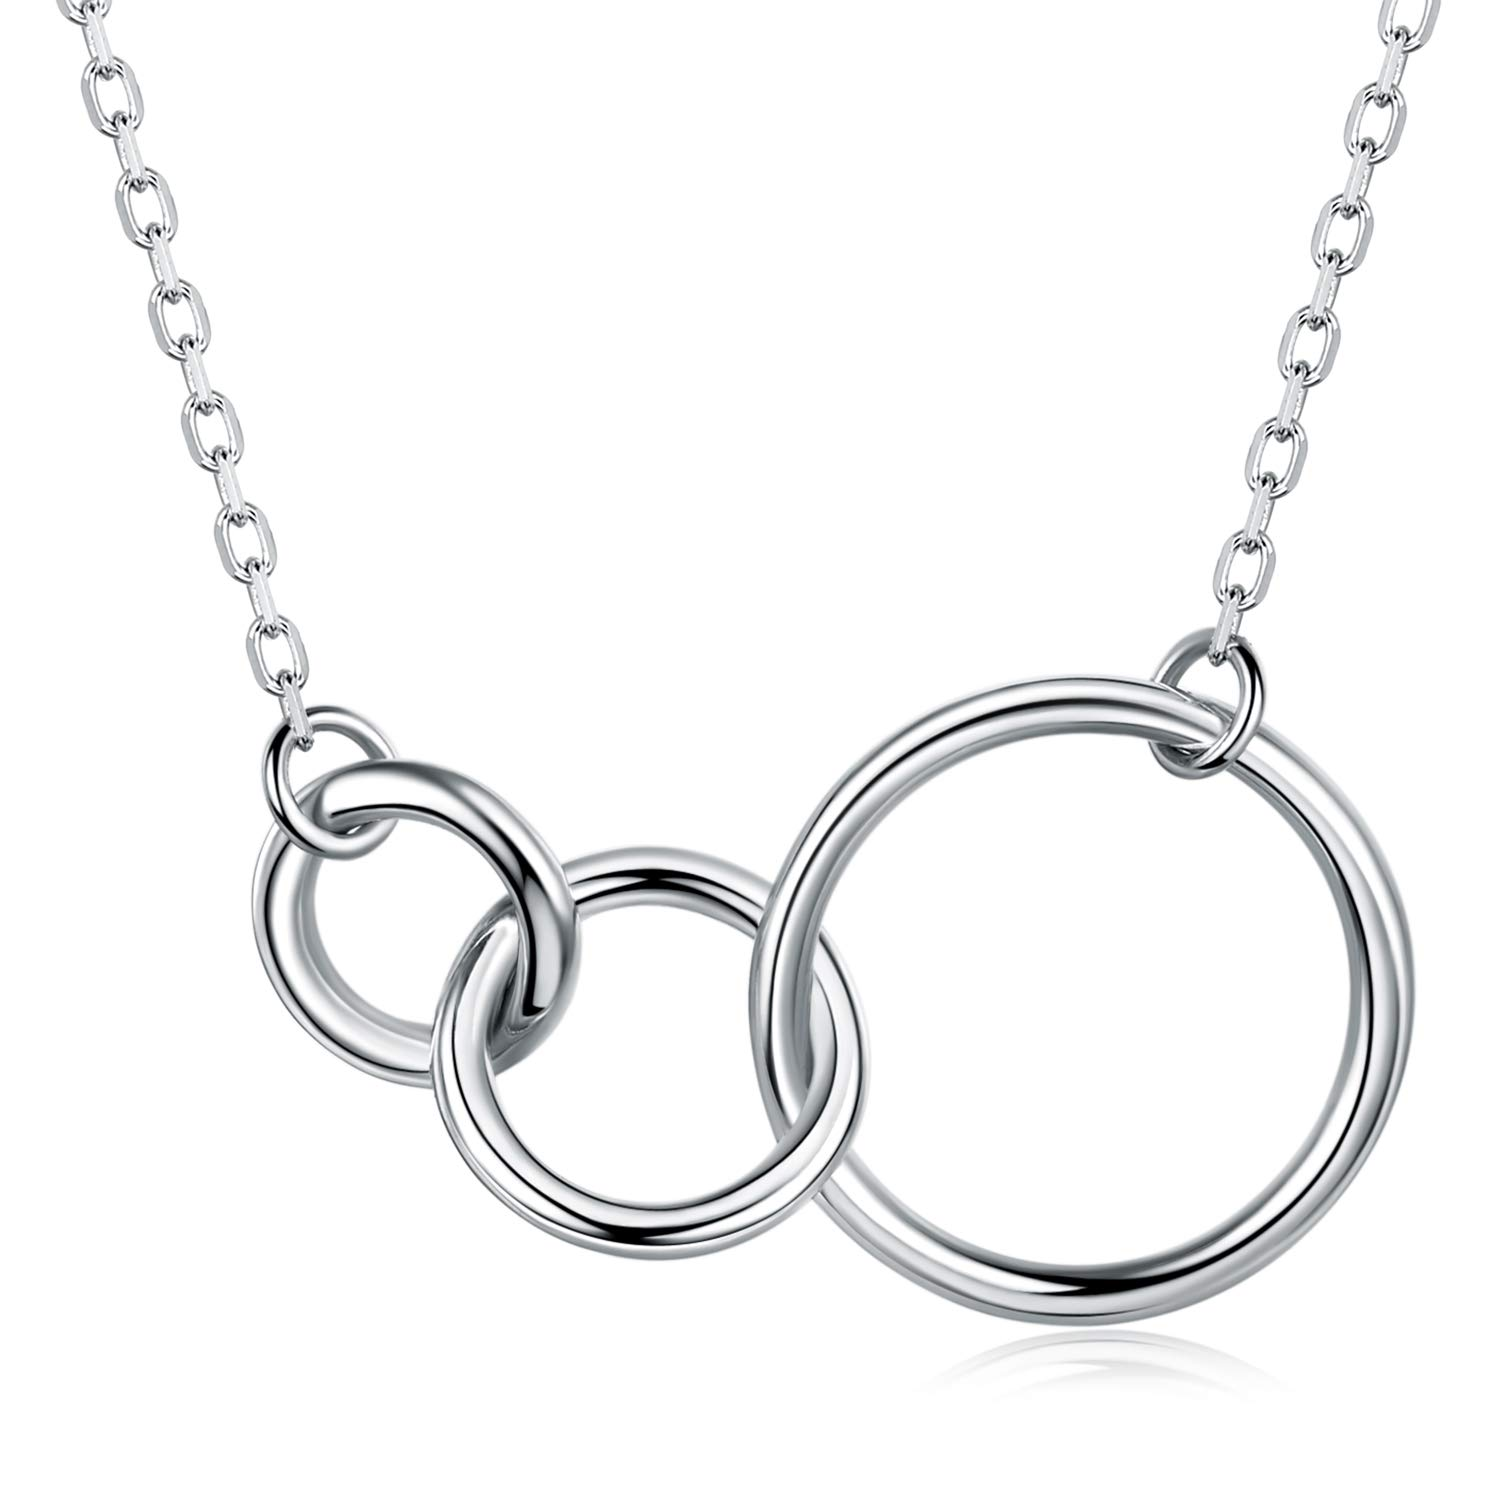 Billie Bijoux 925 Sterling Silver 3 Interlocking Infinity Circles Necklace White Gold Plated Pendant Family Love Friendship